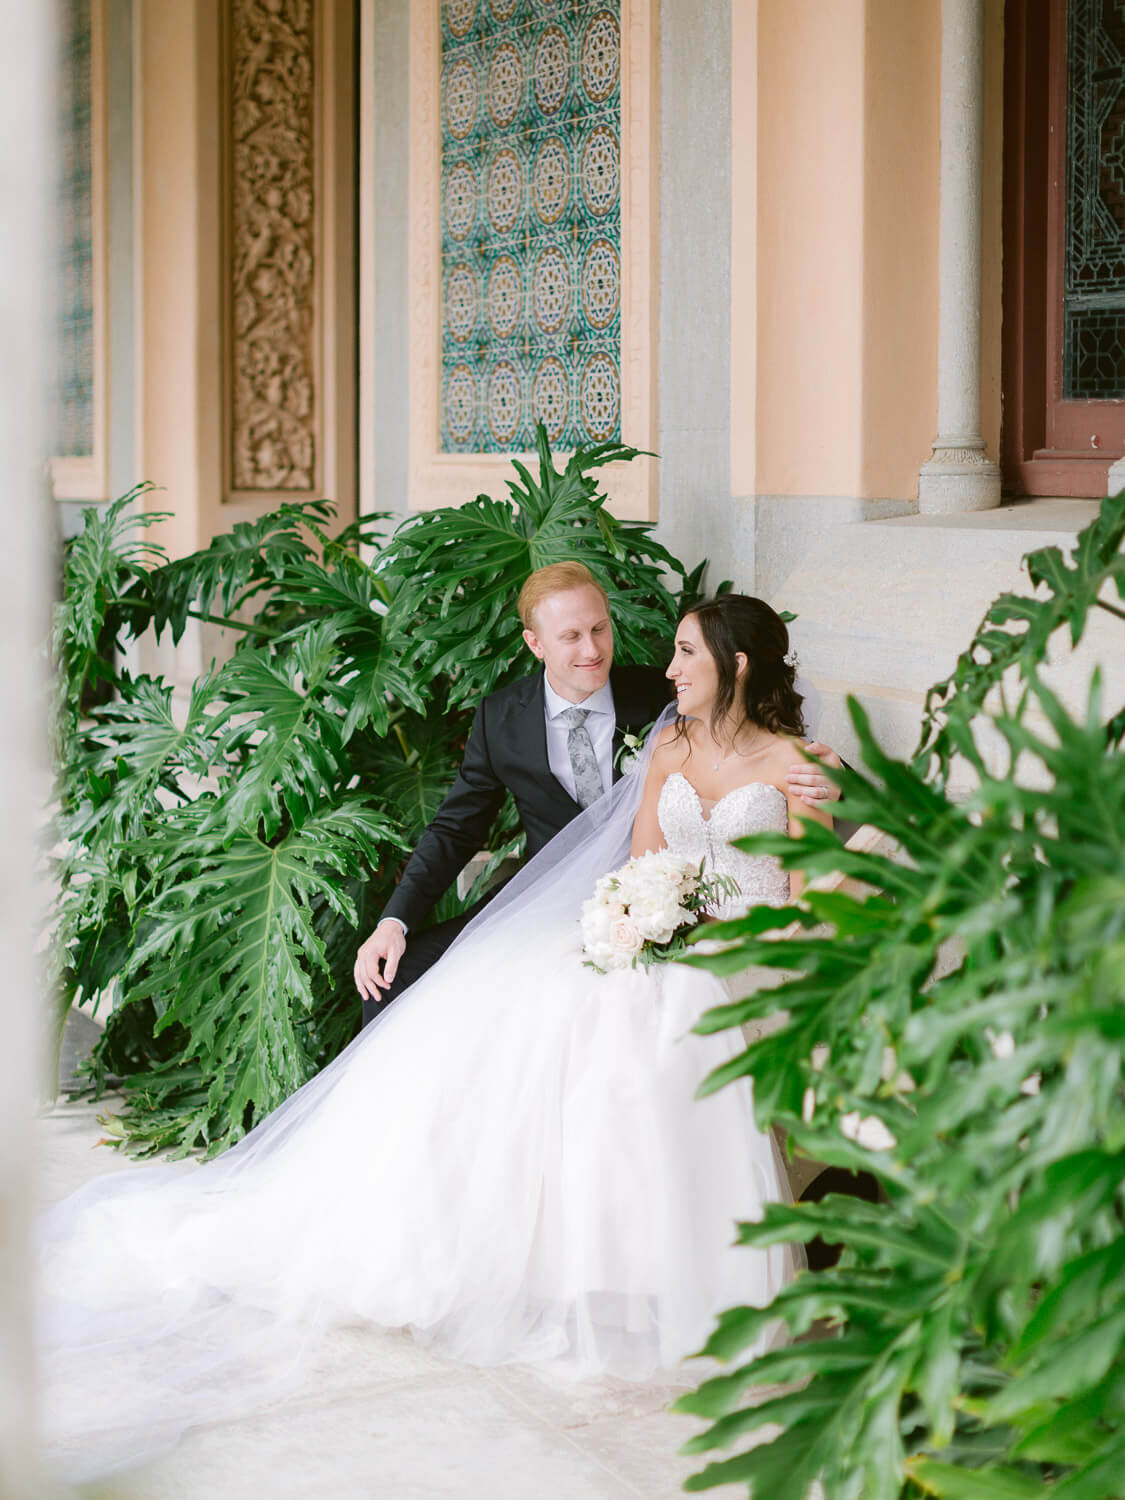 sweet newlyweds sitting in between large plants over Monserrate Palace decorated facade by Portugal Wedding Photographer